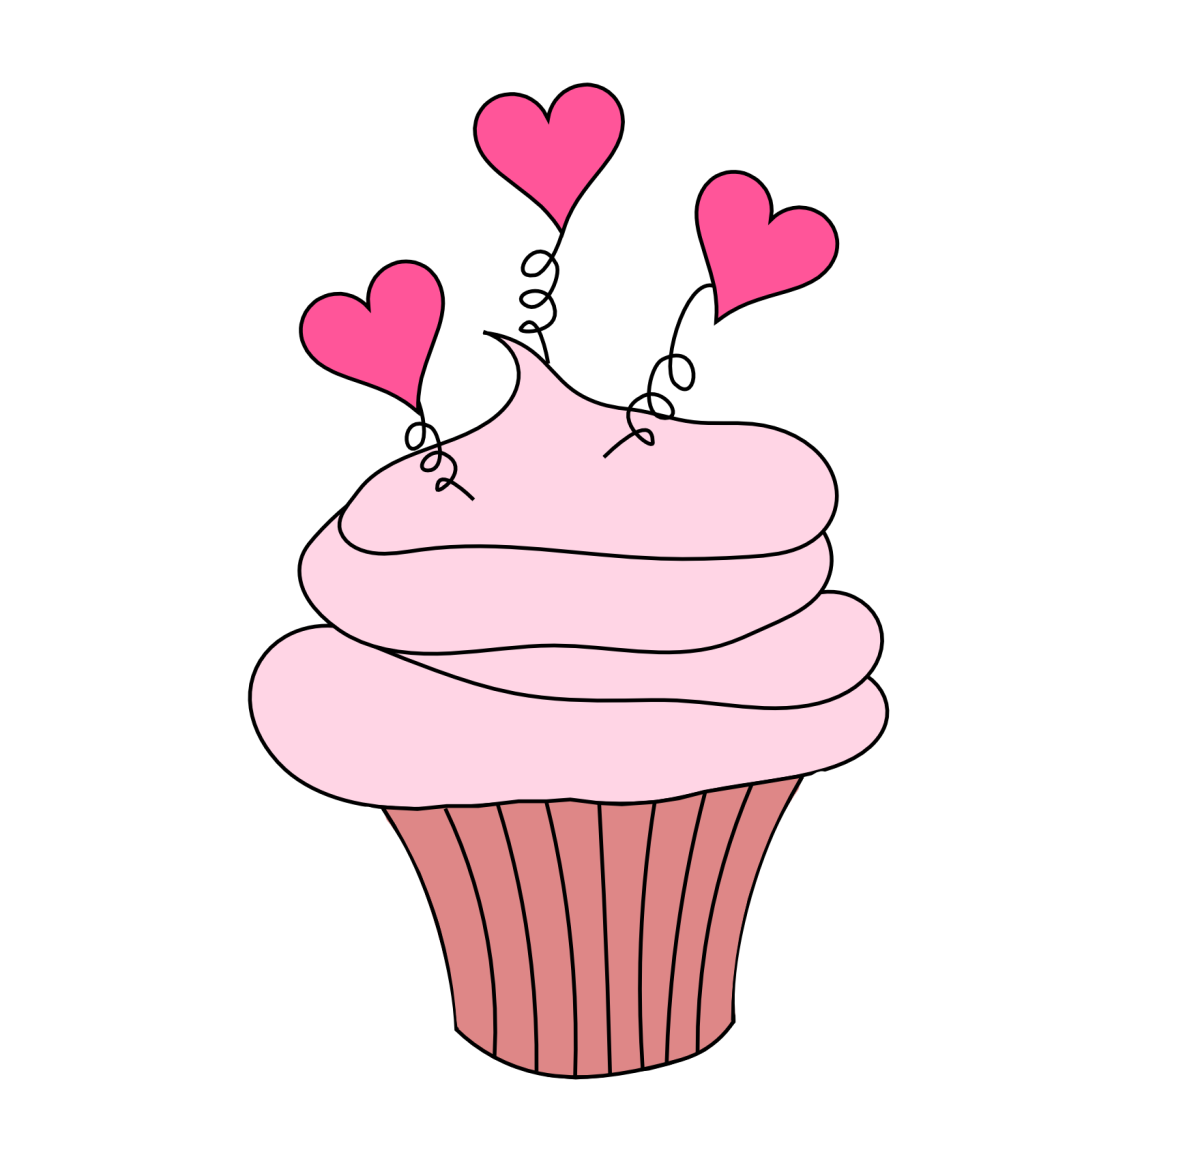 Who can deny a cup cake with pink hearts drawing